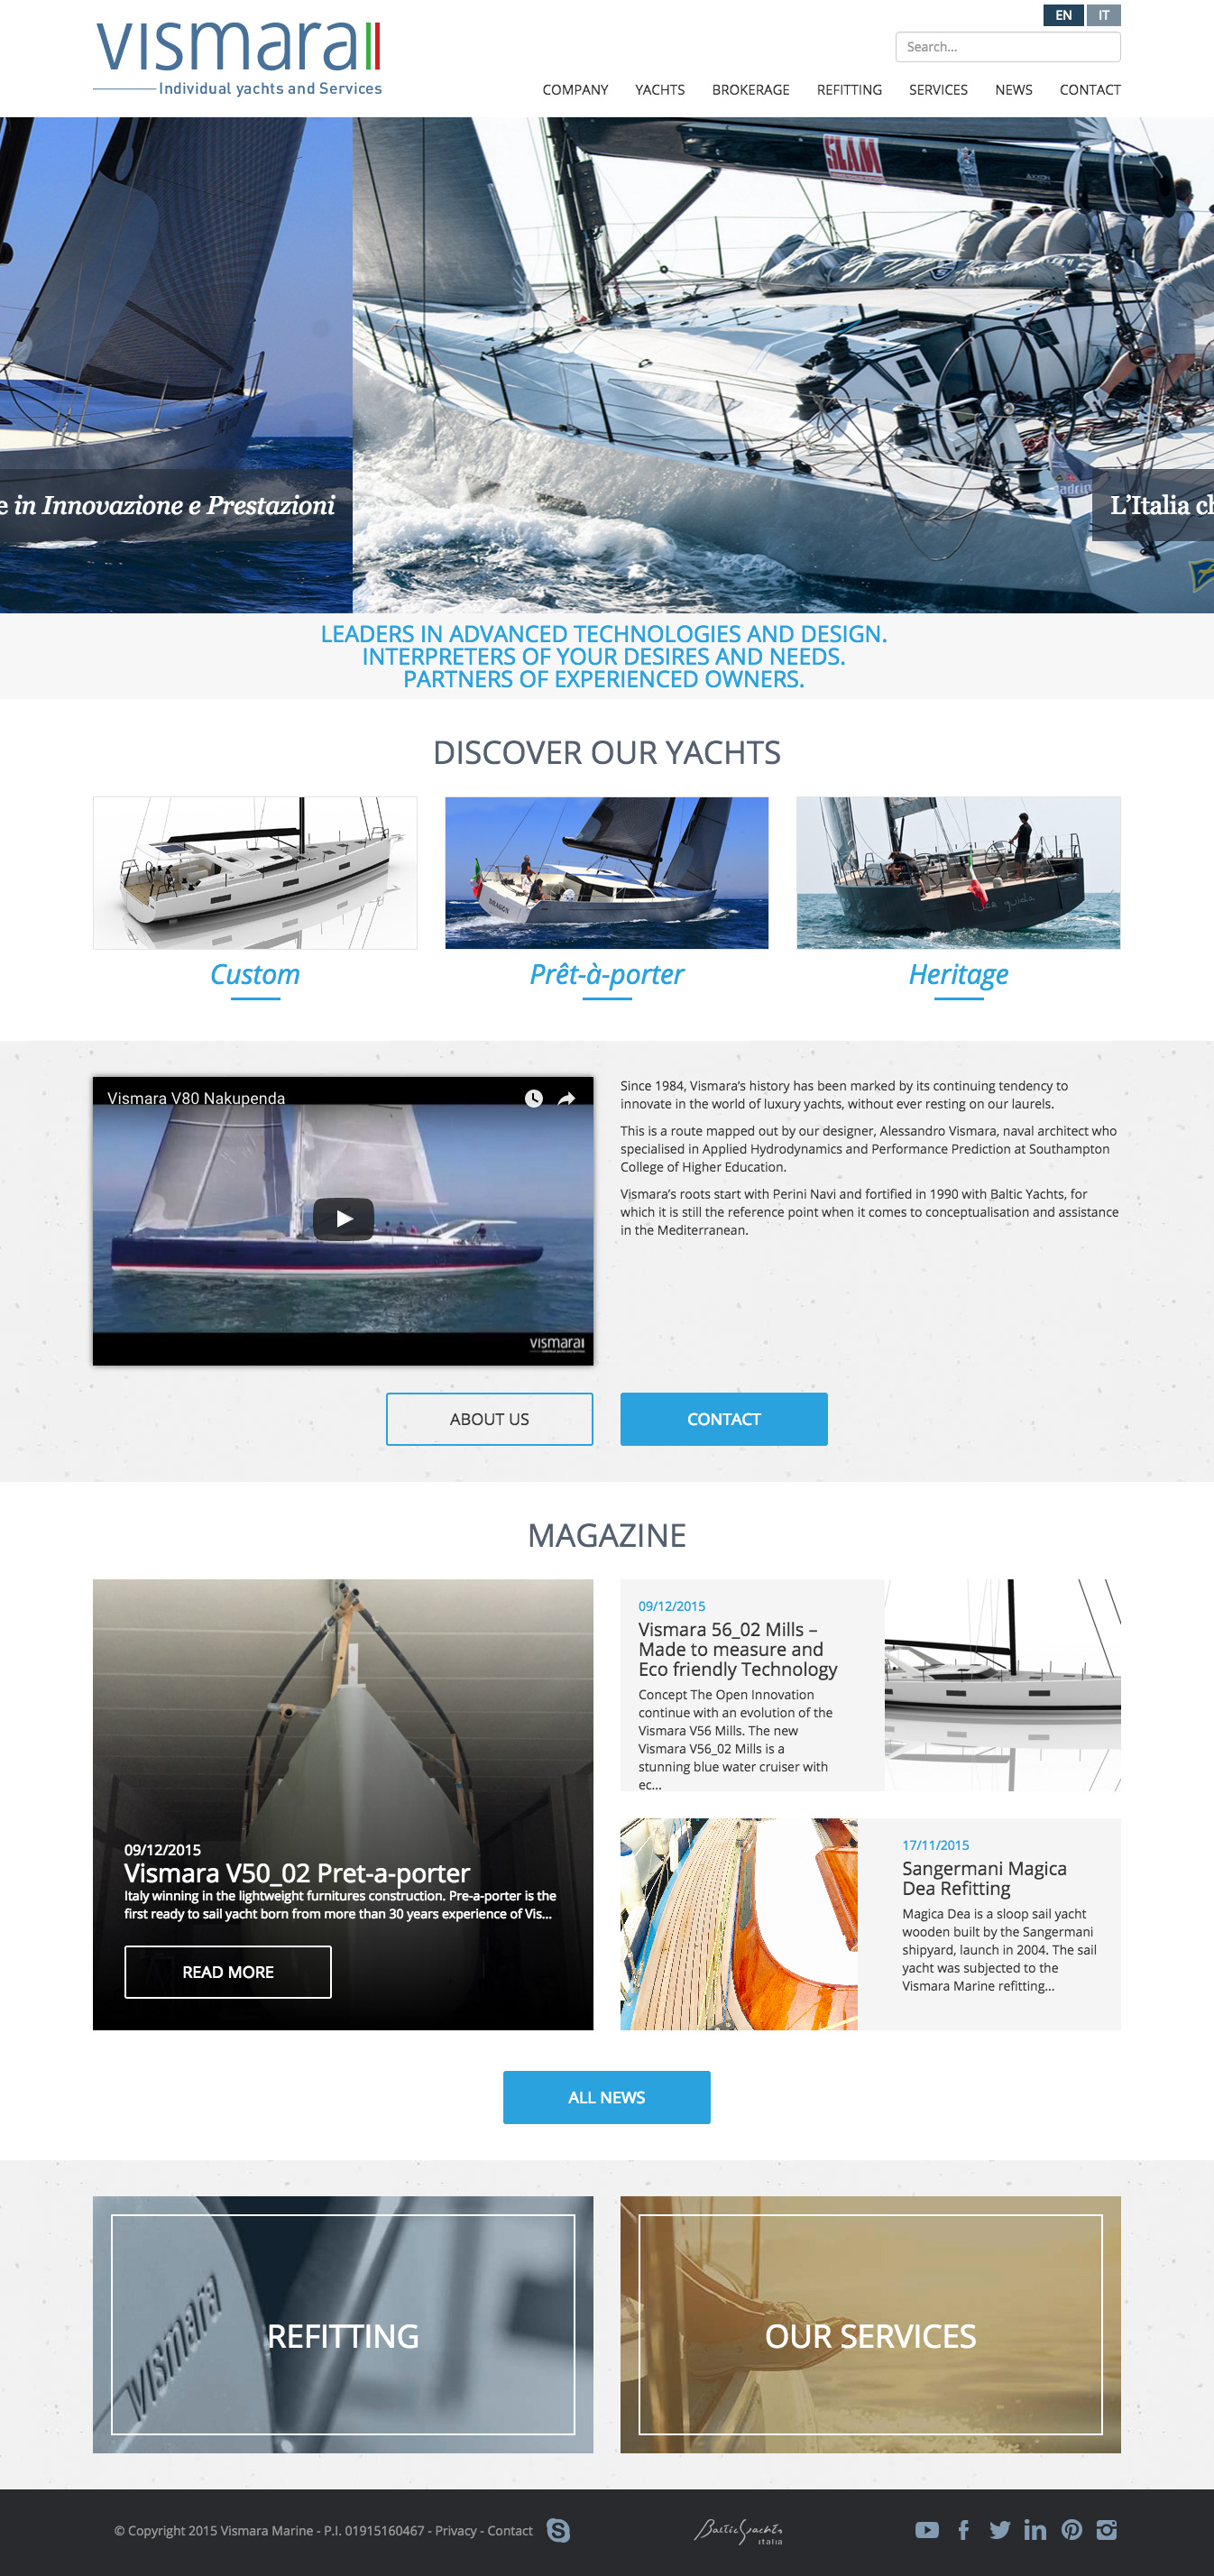 Discover our Yachts